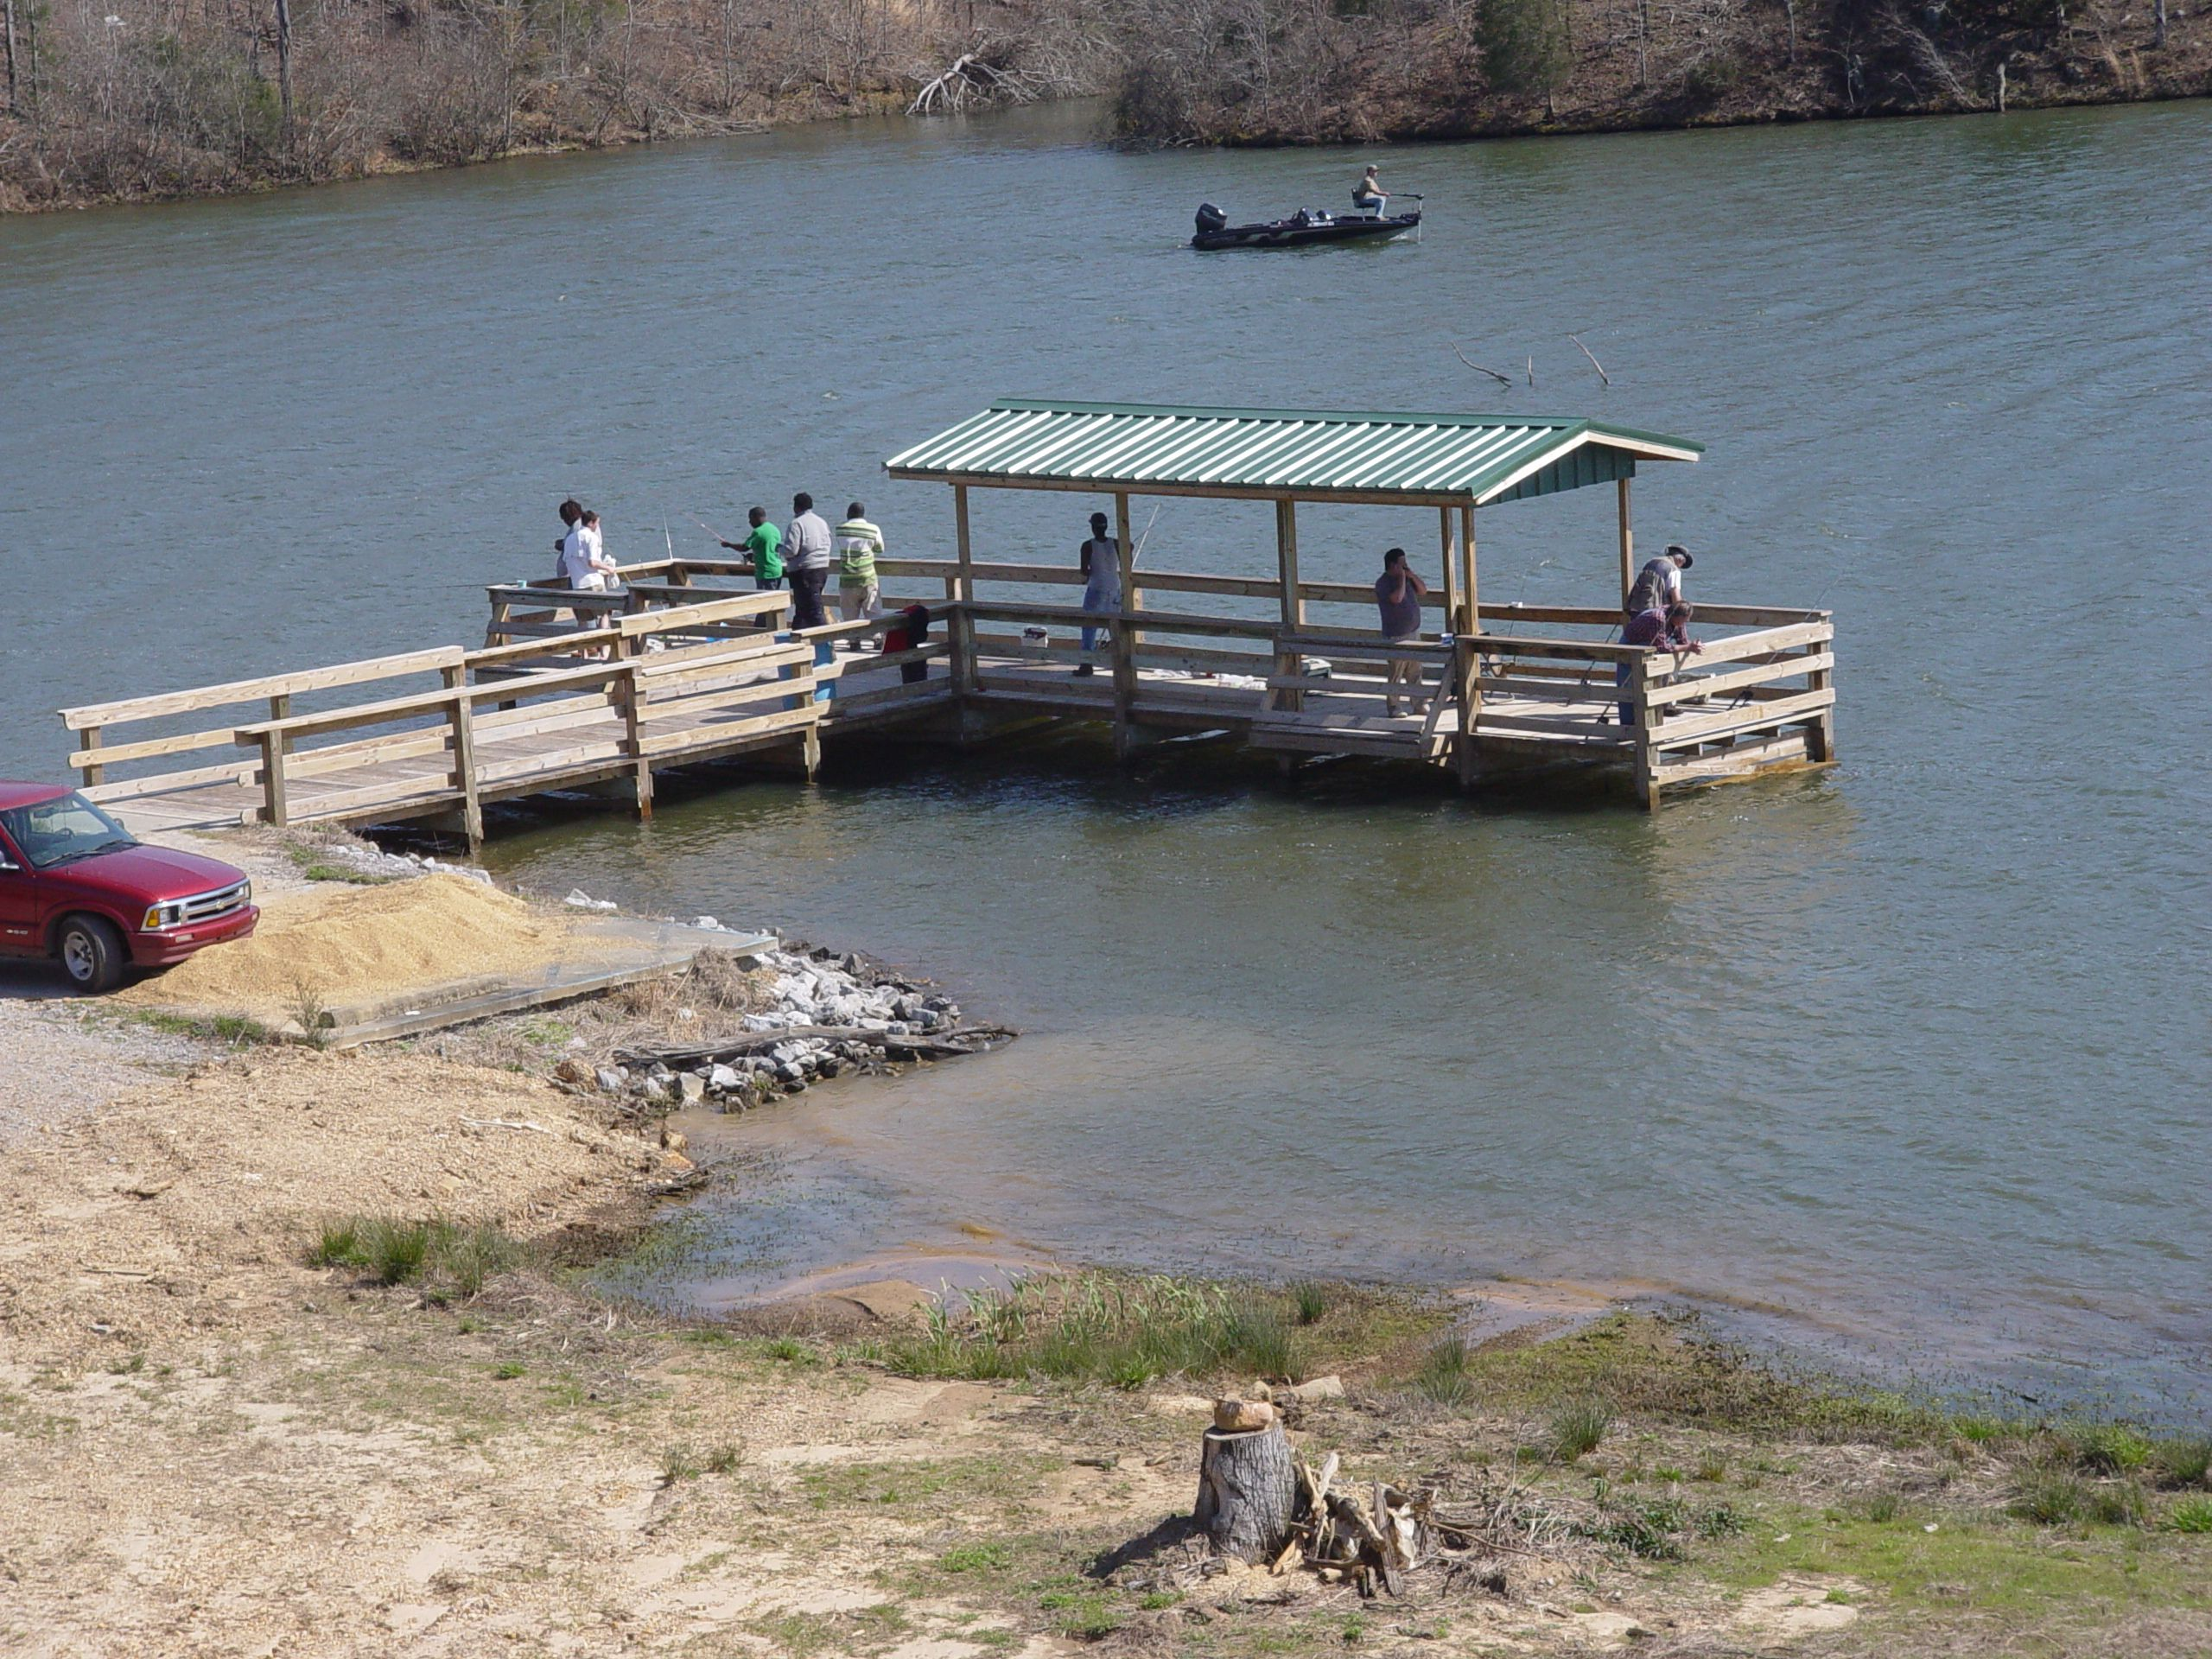 Bibb county lake north of centreville has boat rentals